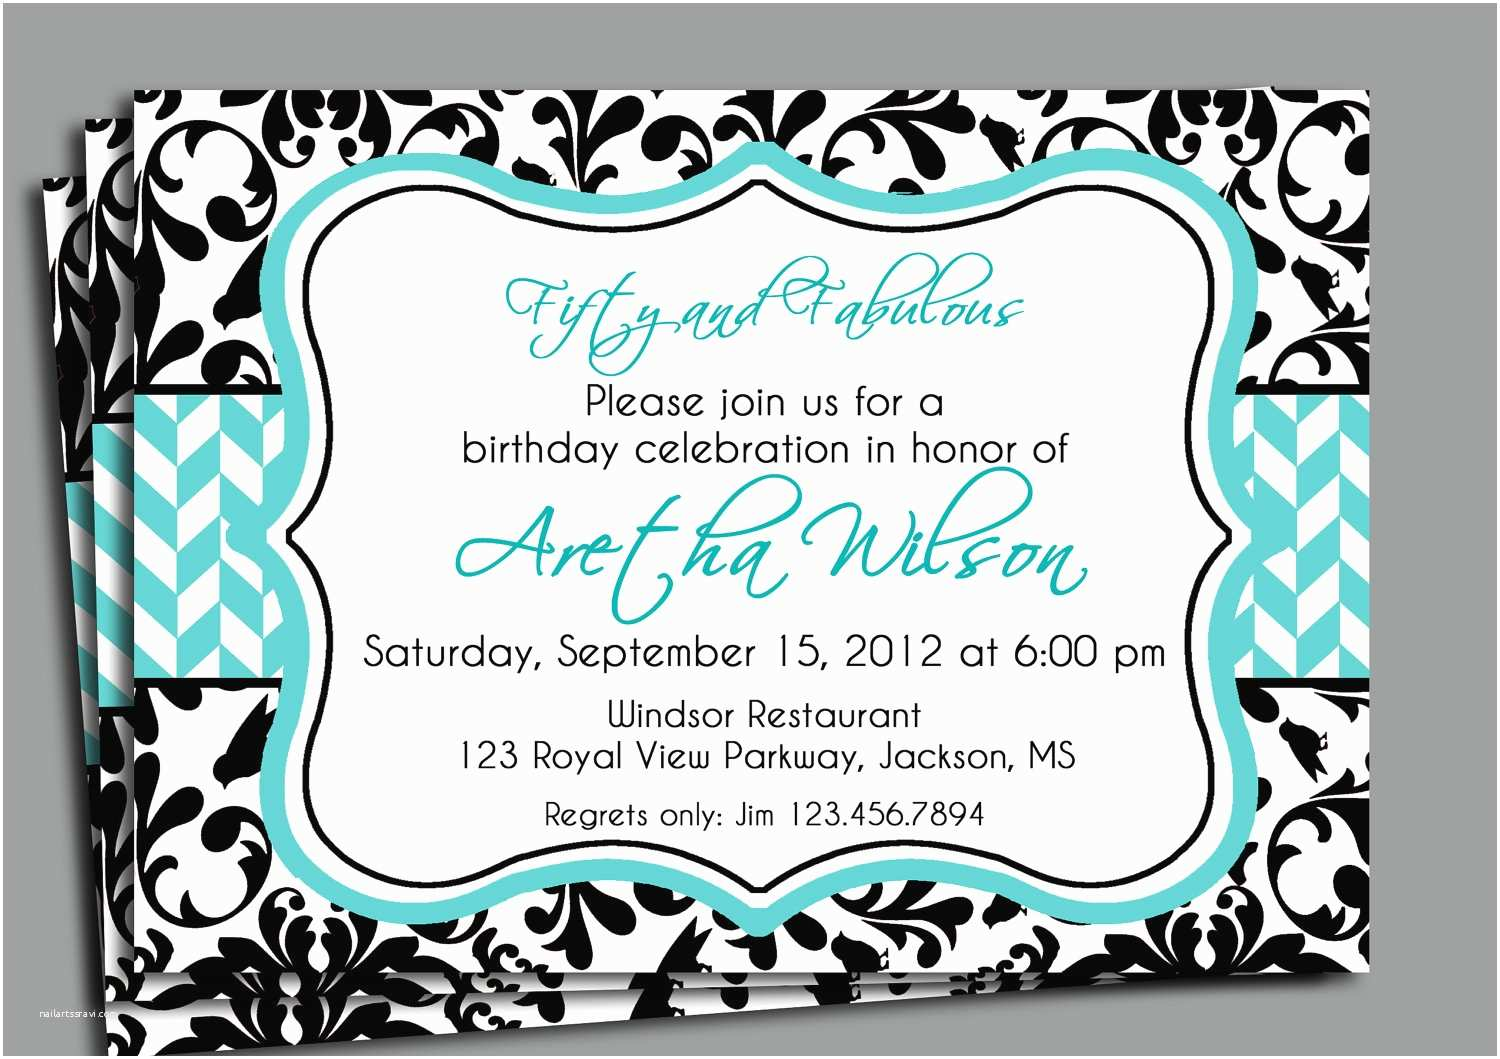 Invitation Wording for Adults Only Party Black Damask Invitation Printable Bridal Shower Adult